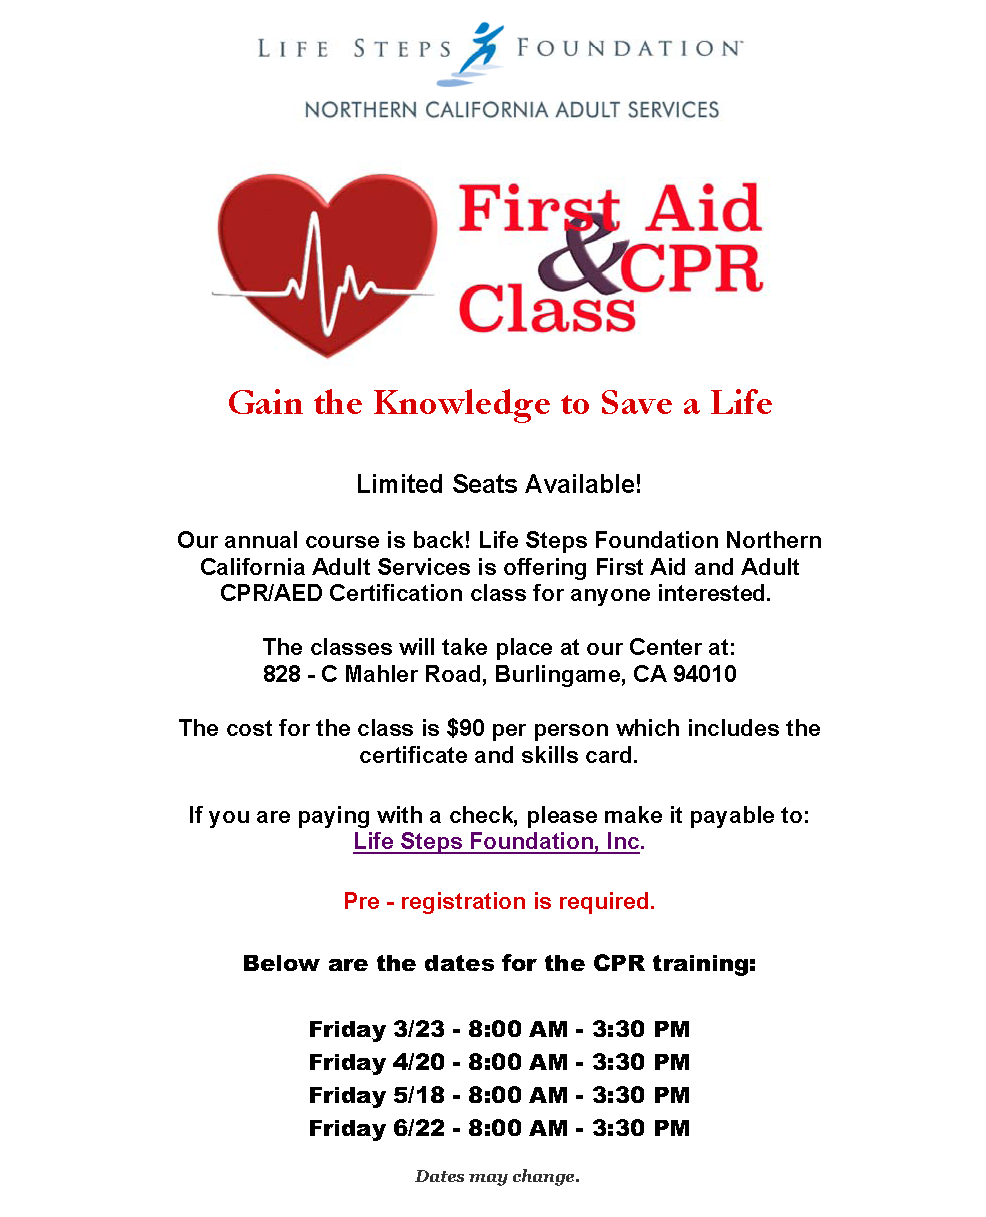 First Aid and Adult CPR/AED Certification